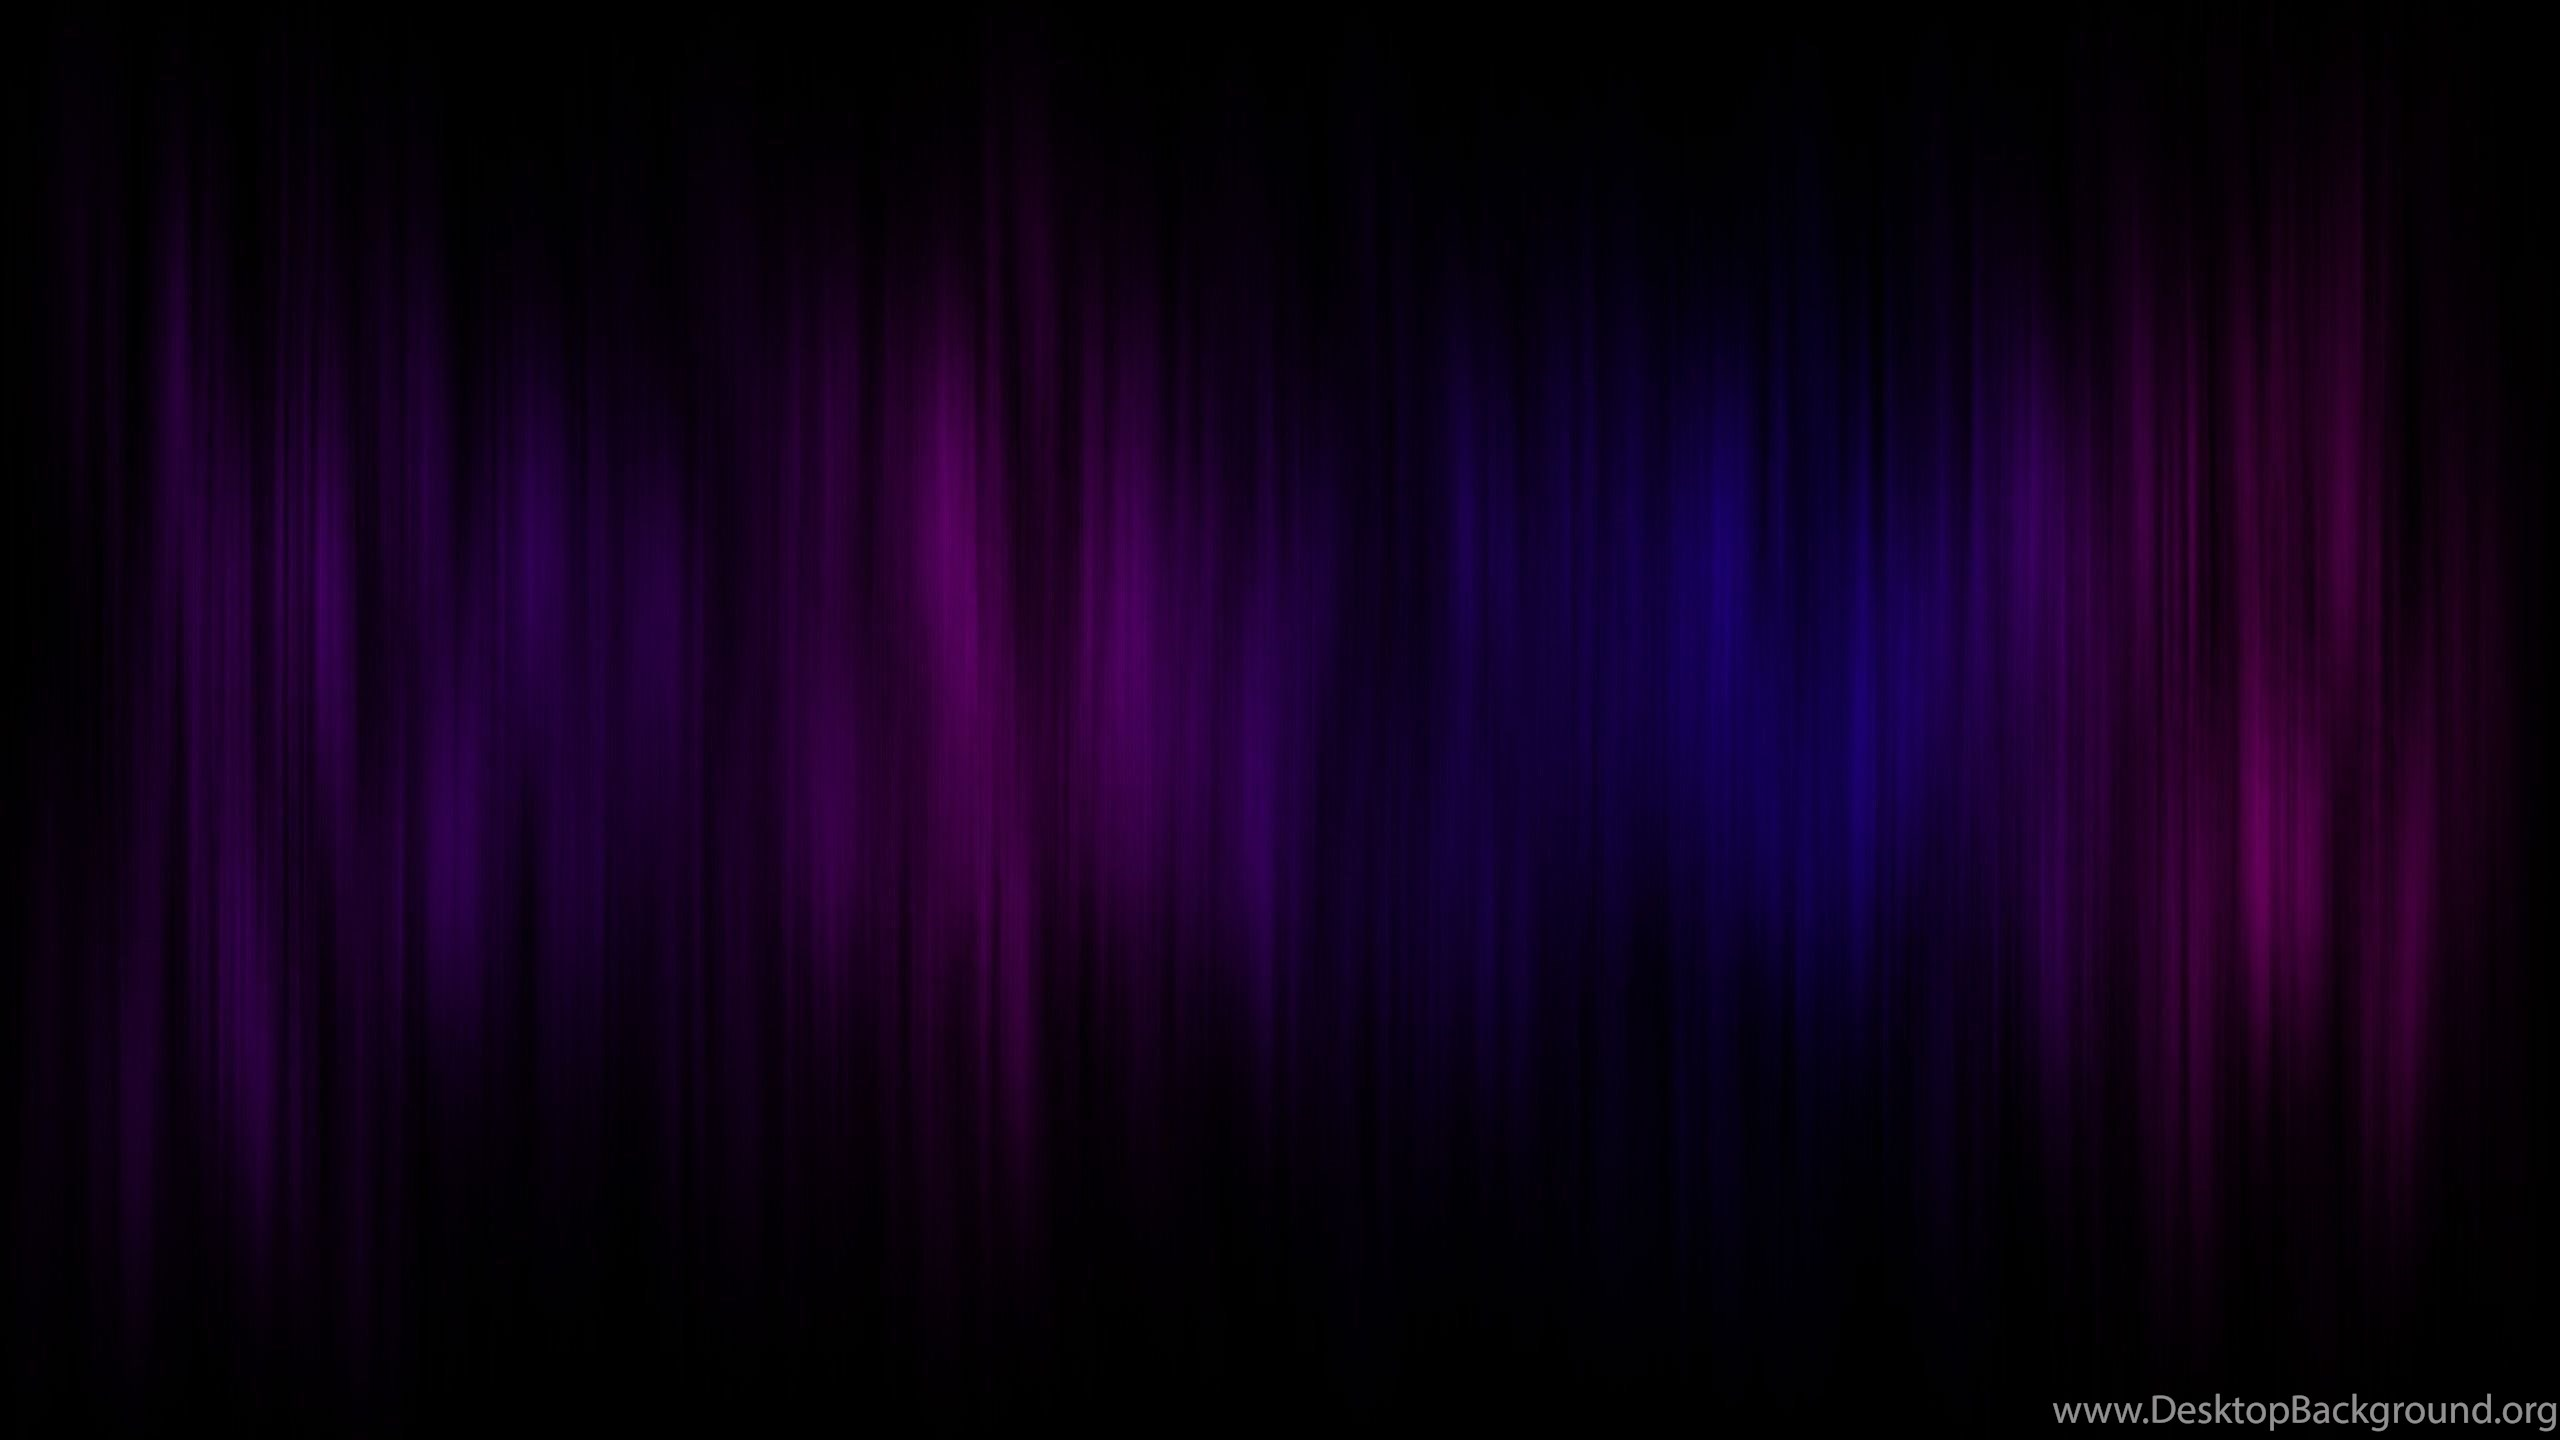 Black And Purple Abstract Widescreen Hd Wallpaper 512: Black And Purple Abstract Wallpapers HD Attachment 1366 HD